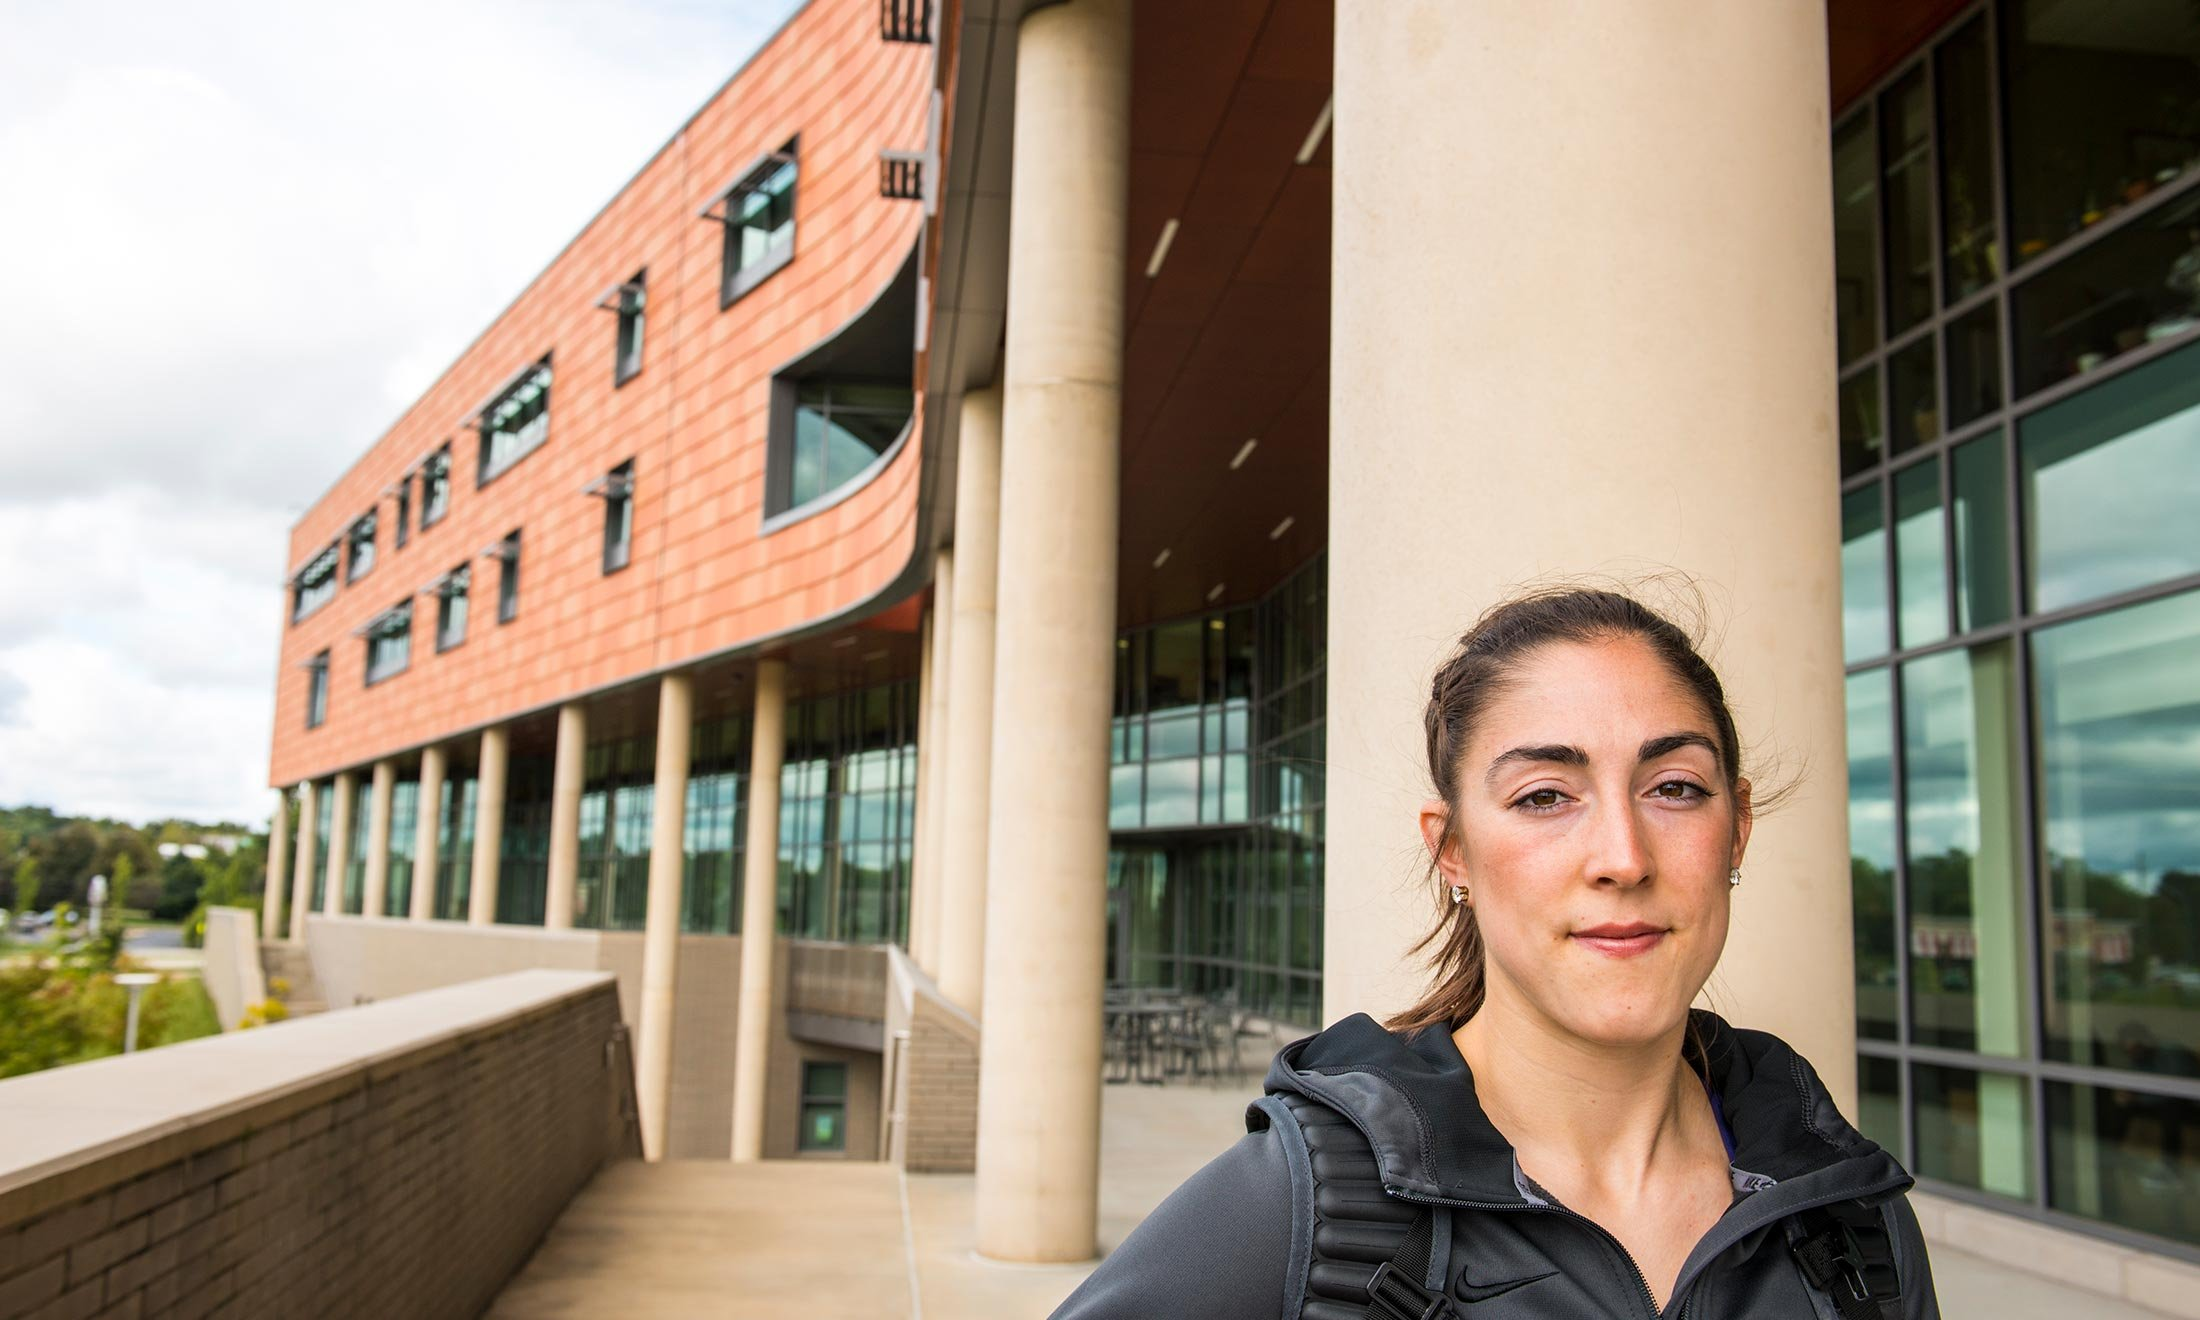 Oakland University women's basketball player Taylor Gleason outside of the Human Health Building at O U